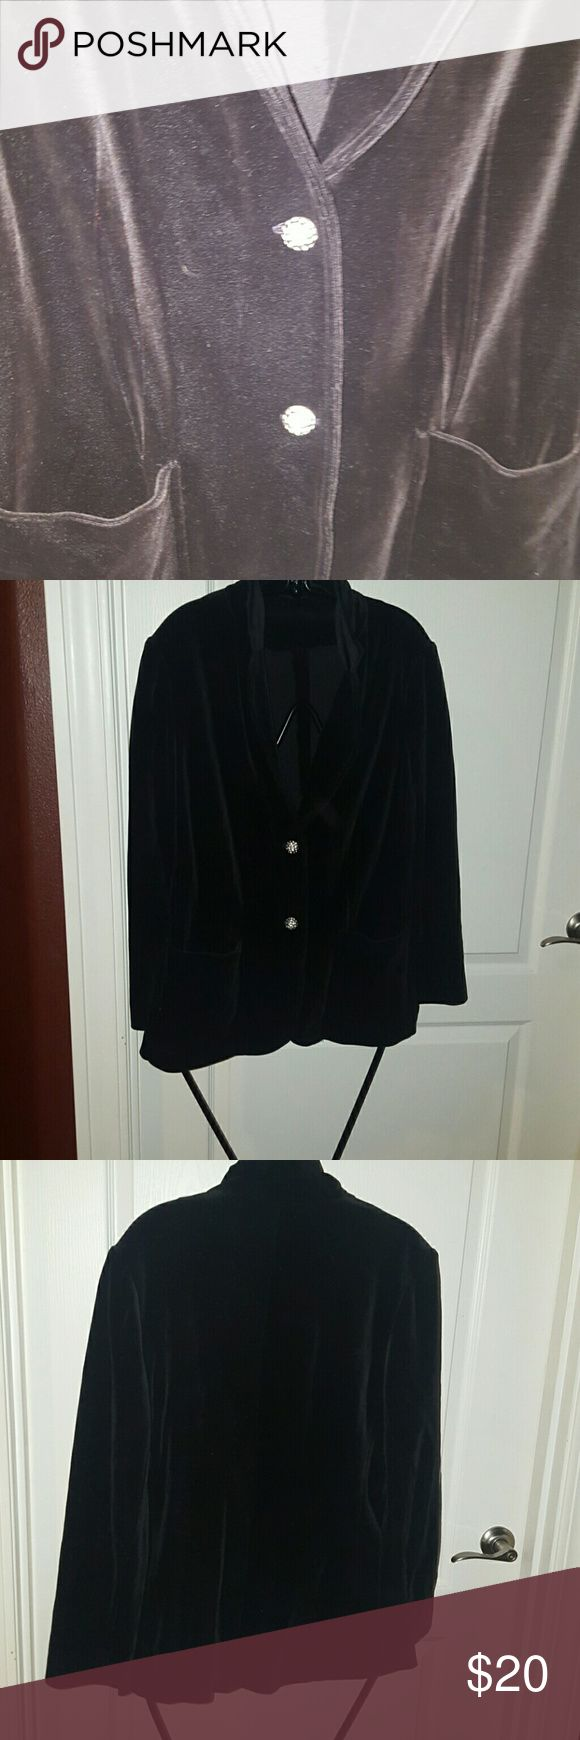 Black velvet blazer Stretch fabric with amazing domed rhinestone  buttons. No tags at all. 2 pockets in front. Jackets & Coats Blazers